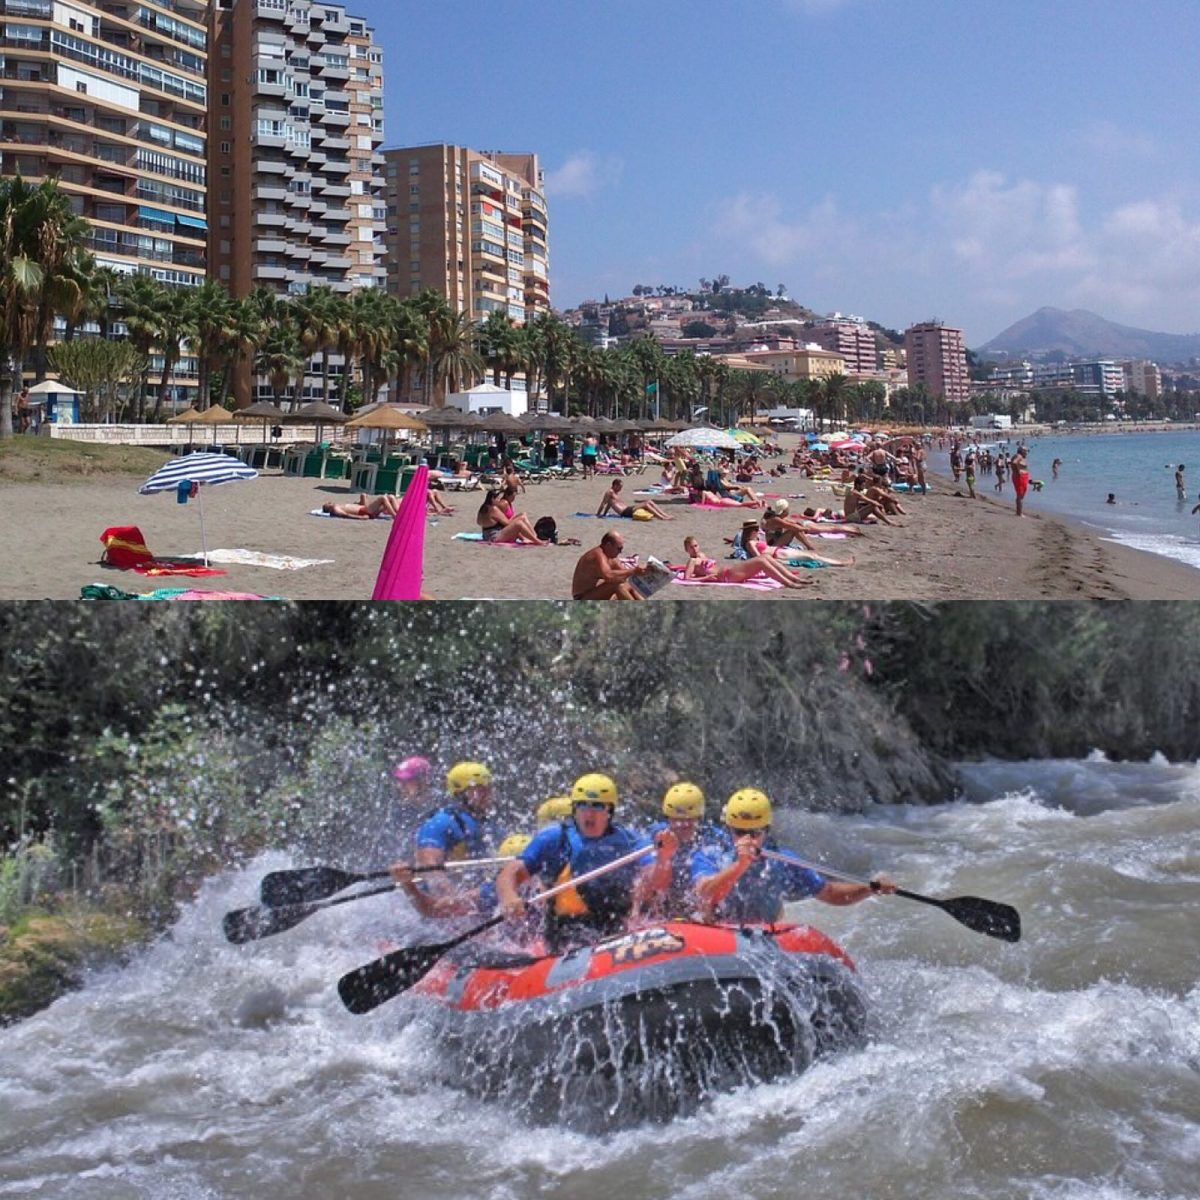 rafting alternativa al sol y playa